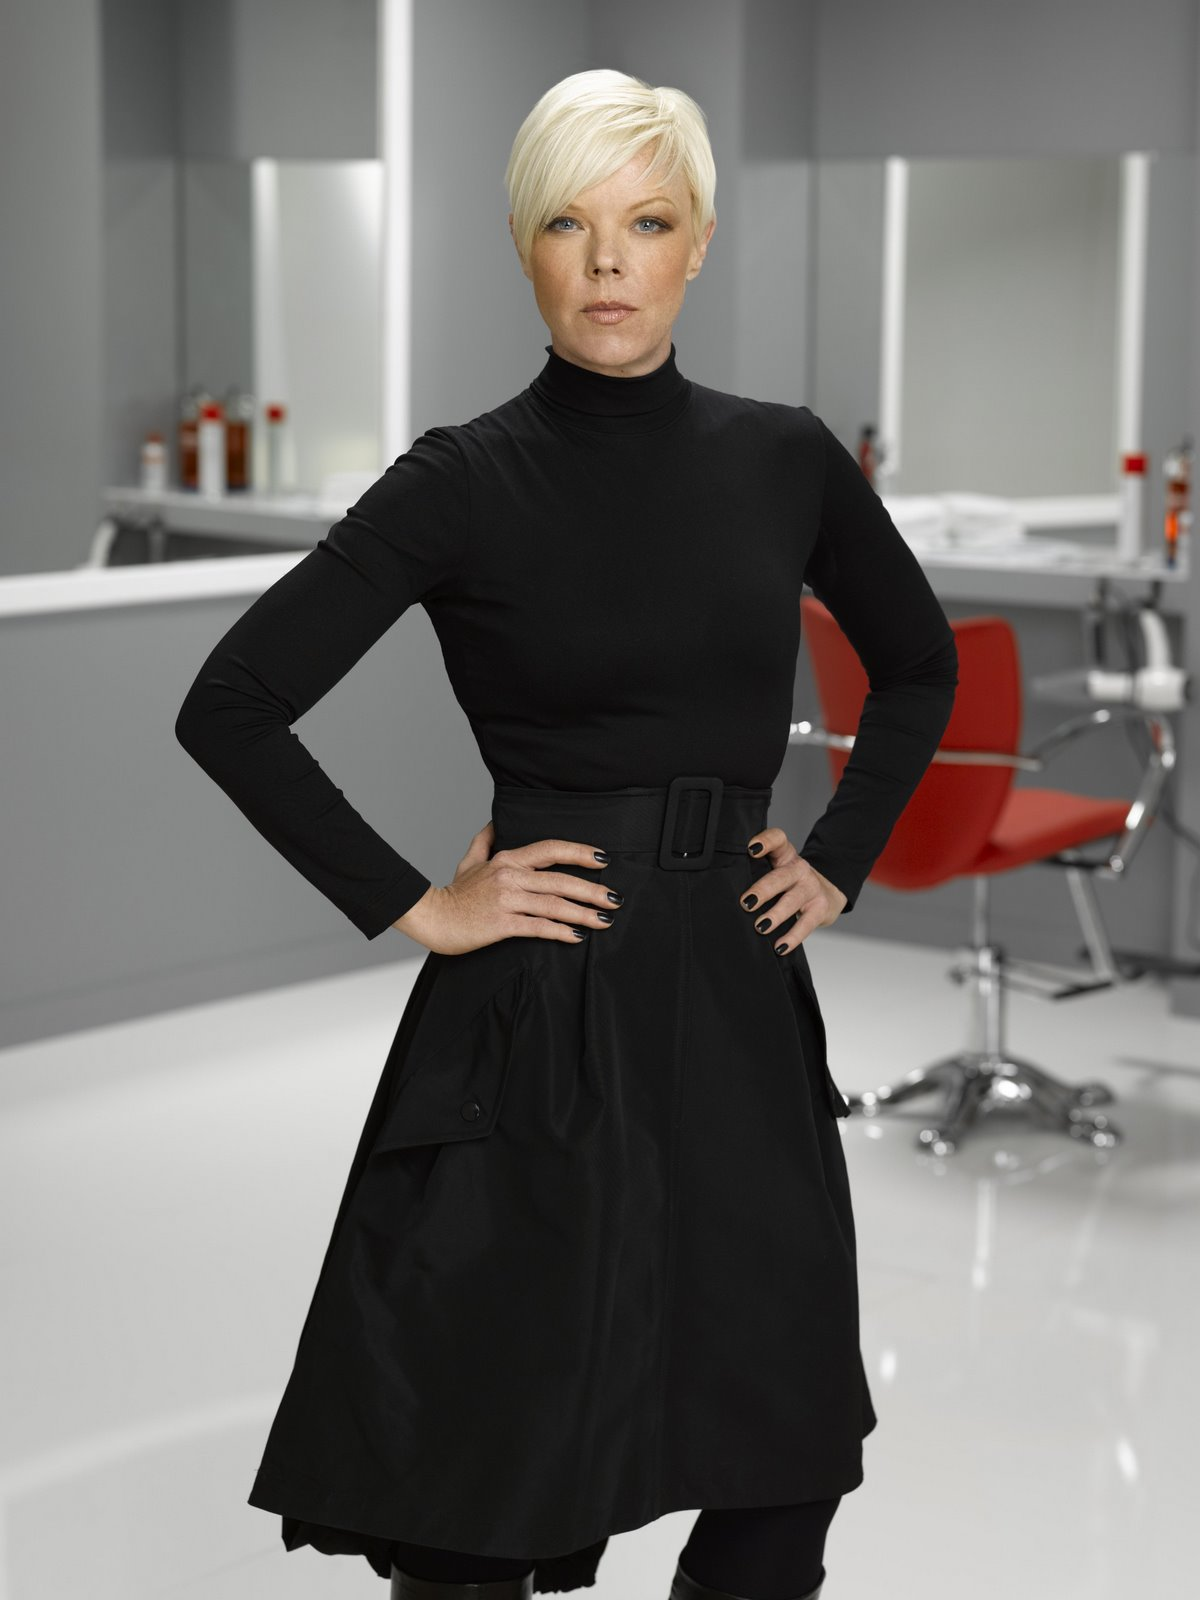 Tabatha Coffey's quote #2